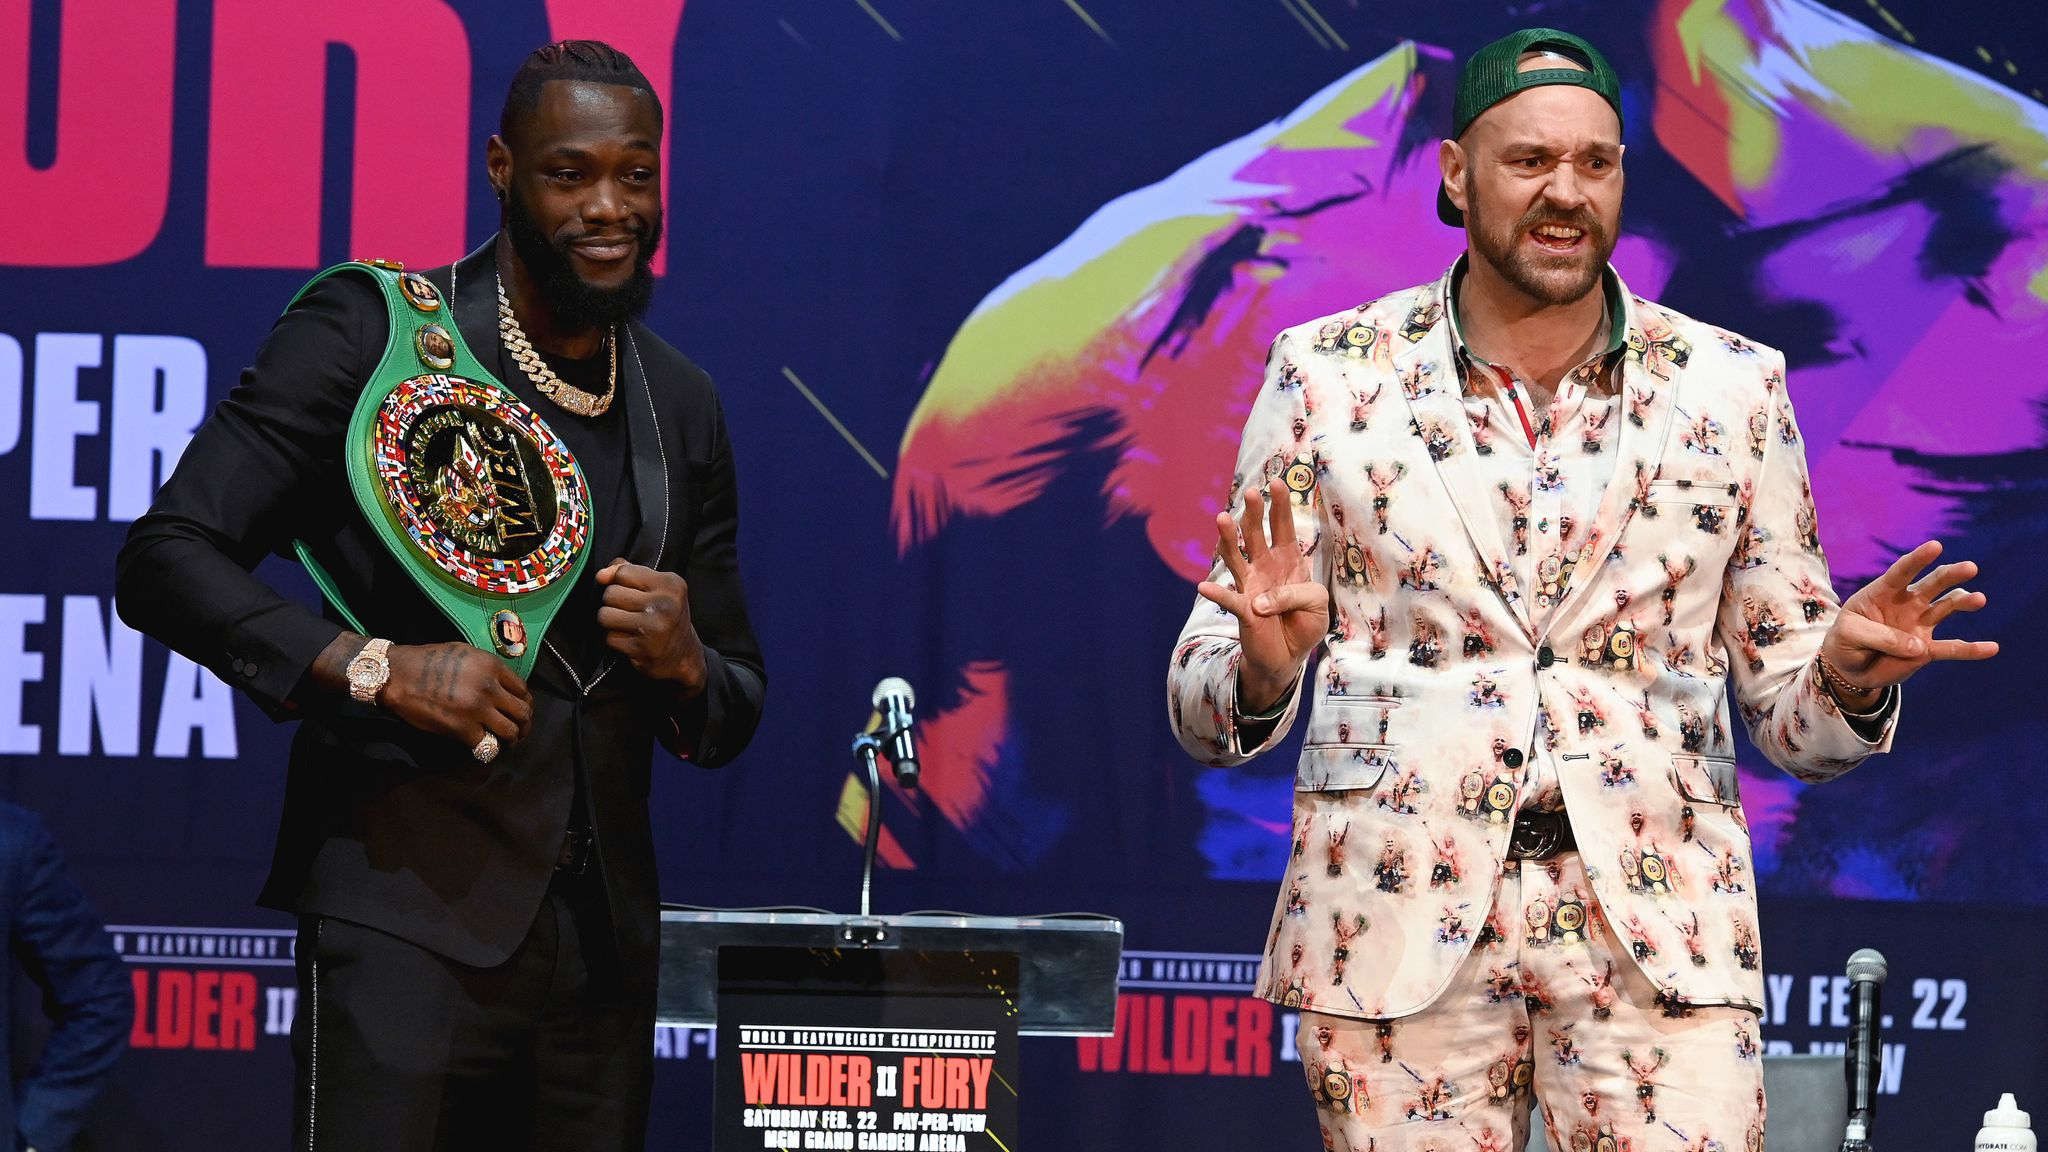 Wilder vs Fury 2: Tyson Fury asks Richard Riakporhe and Lawrence Okolie to be his sparring partners